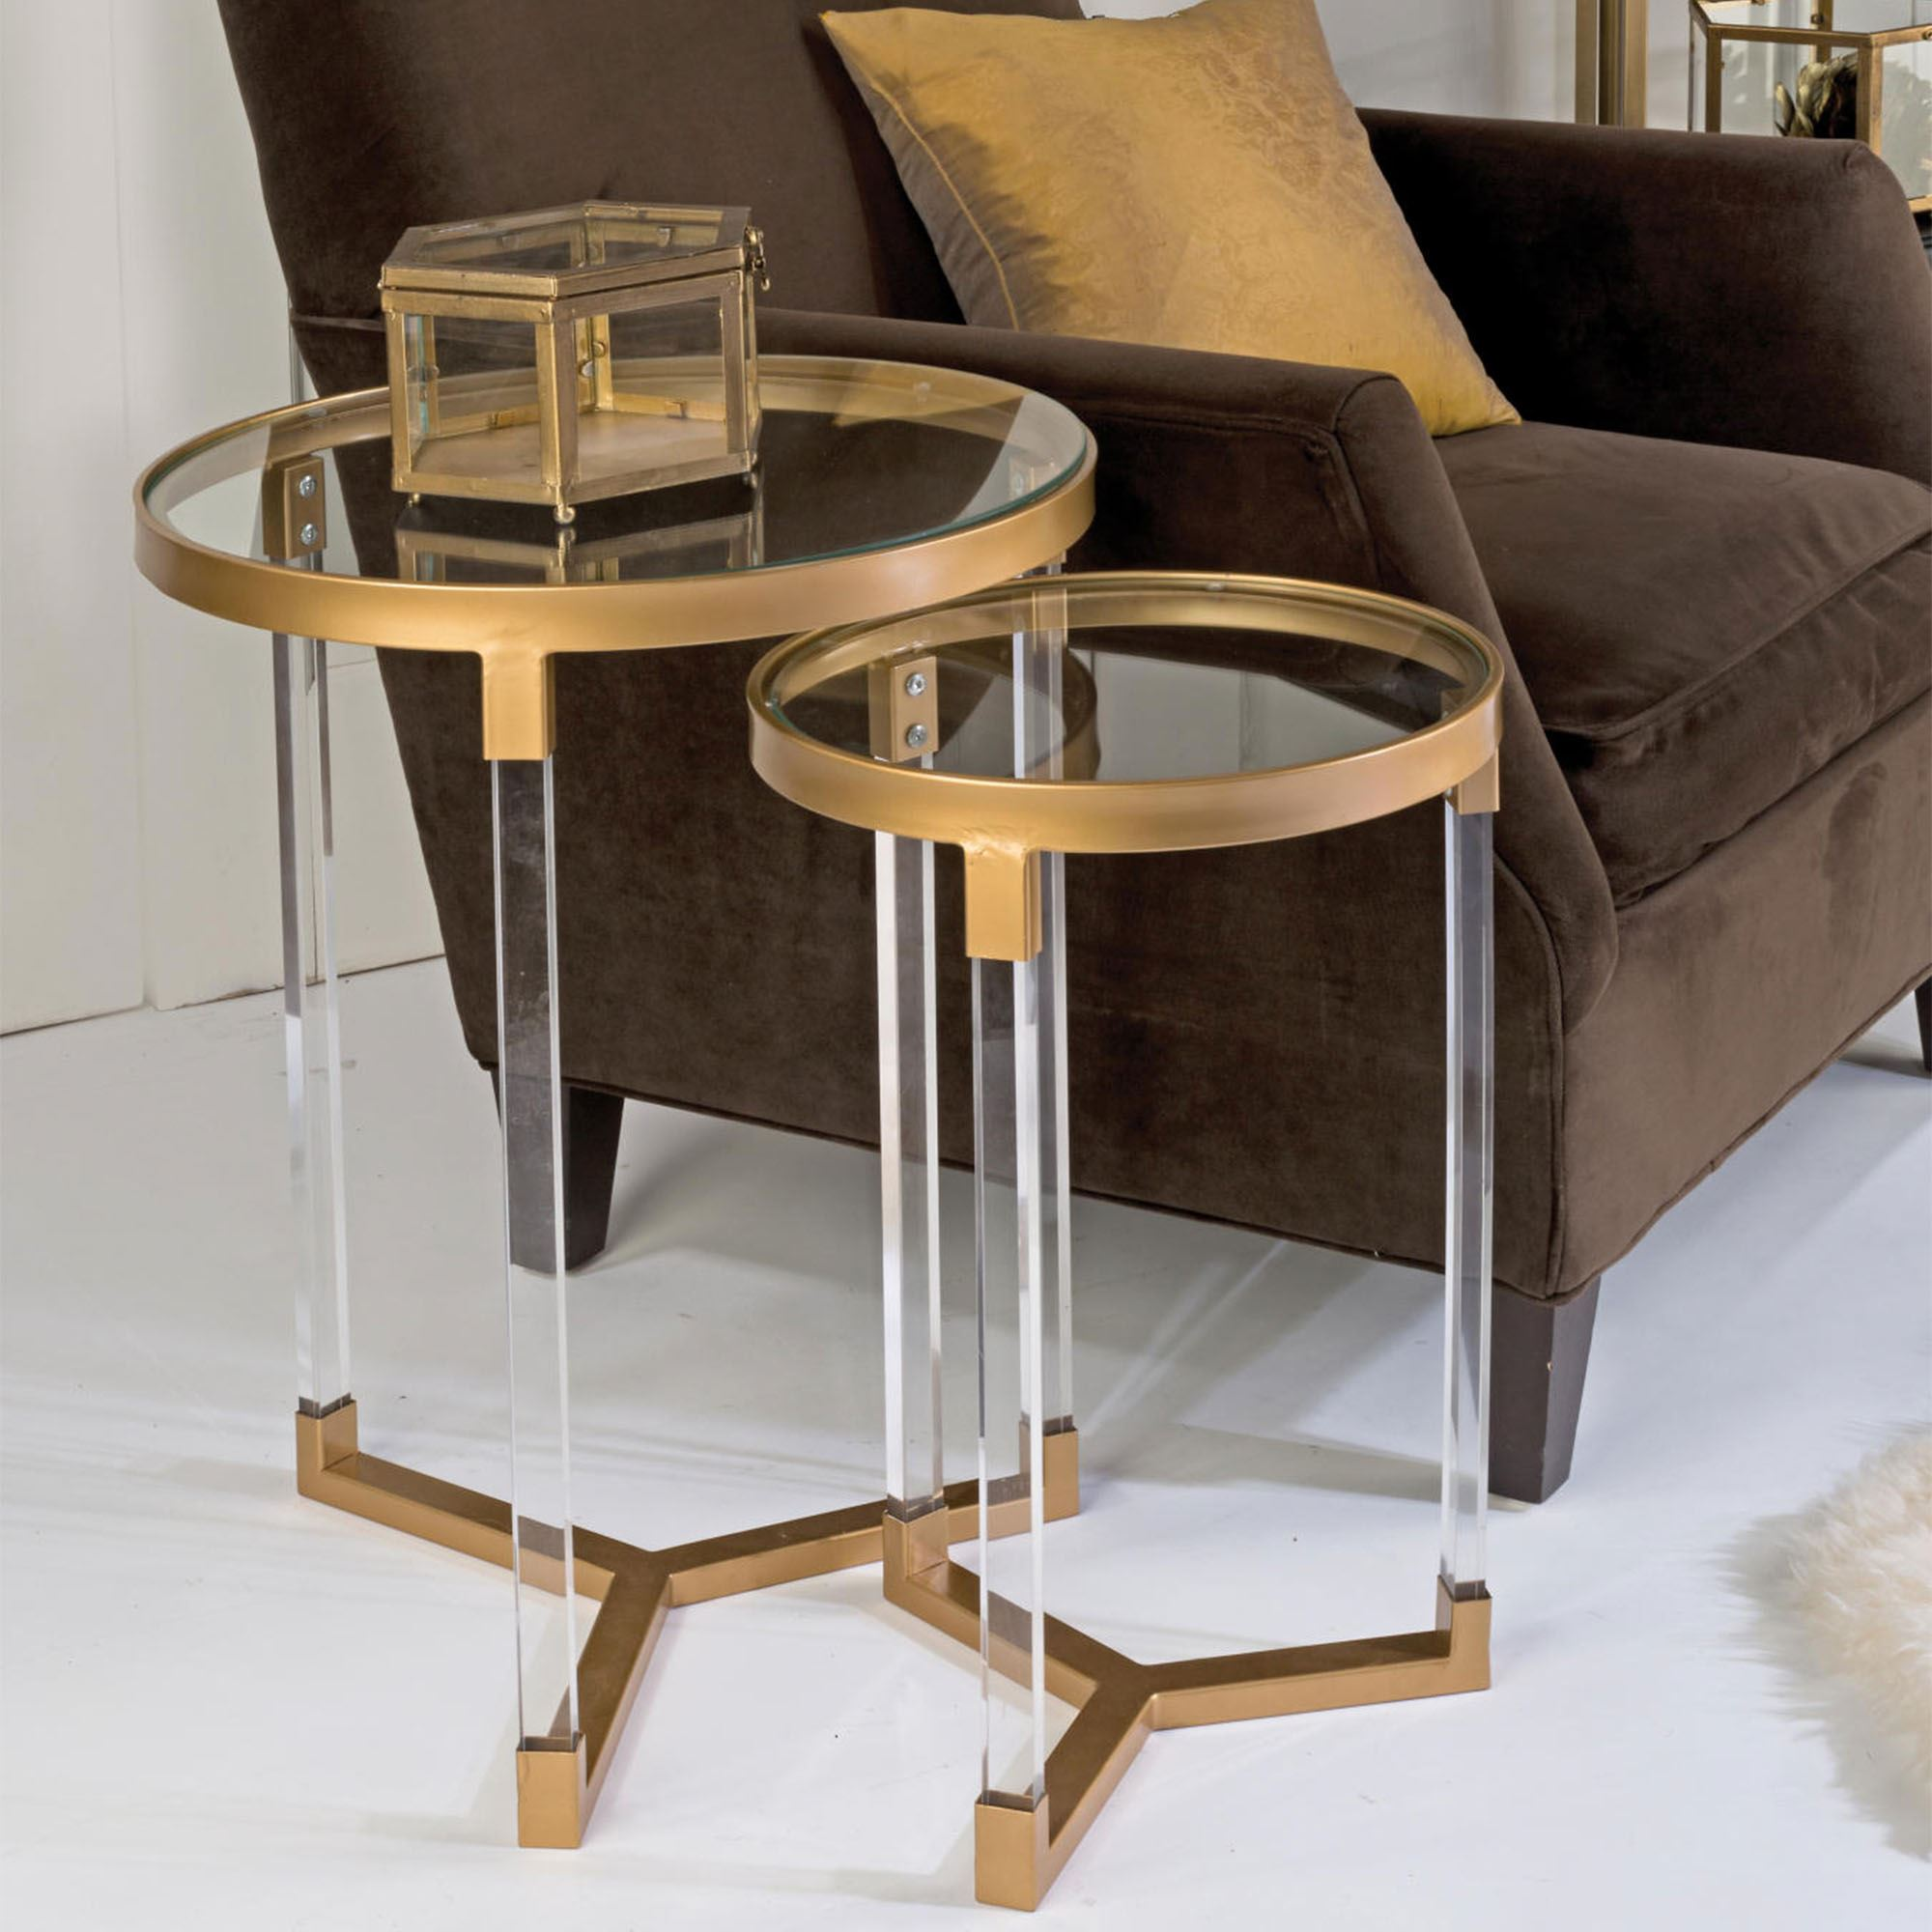 Round Coffee Table With Chairs.Janaye Acrylic And Gold Iron Round Side Table Set